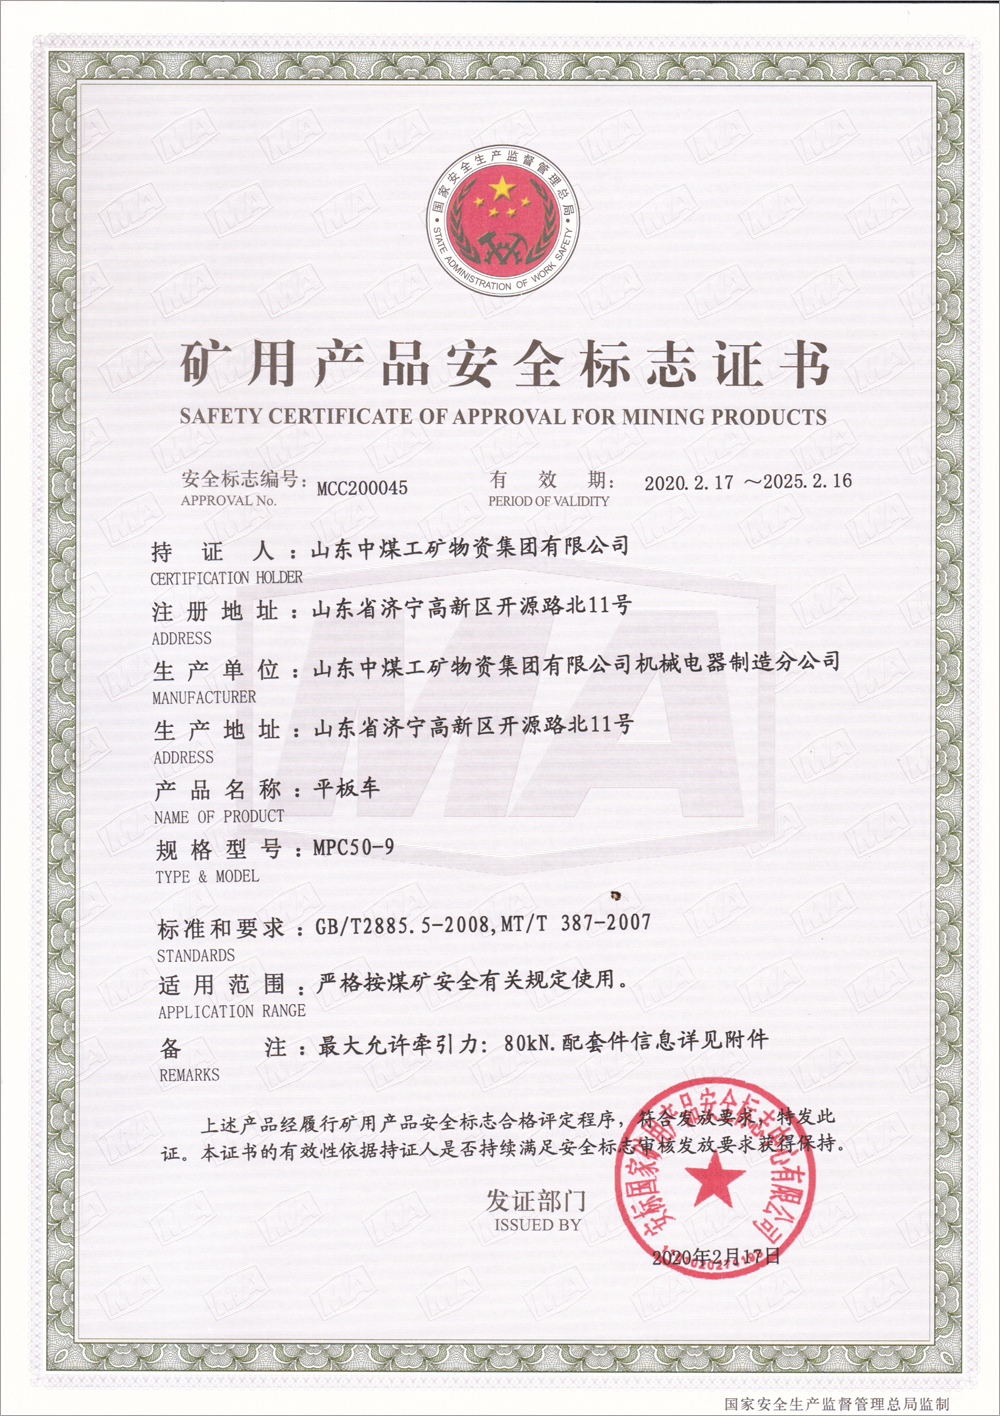 Warm Congratulations To China Coal Group For Adding Another 9 National Mining Product Safety Logo Certificates